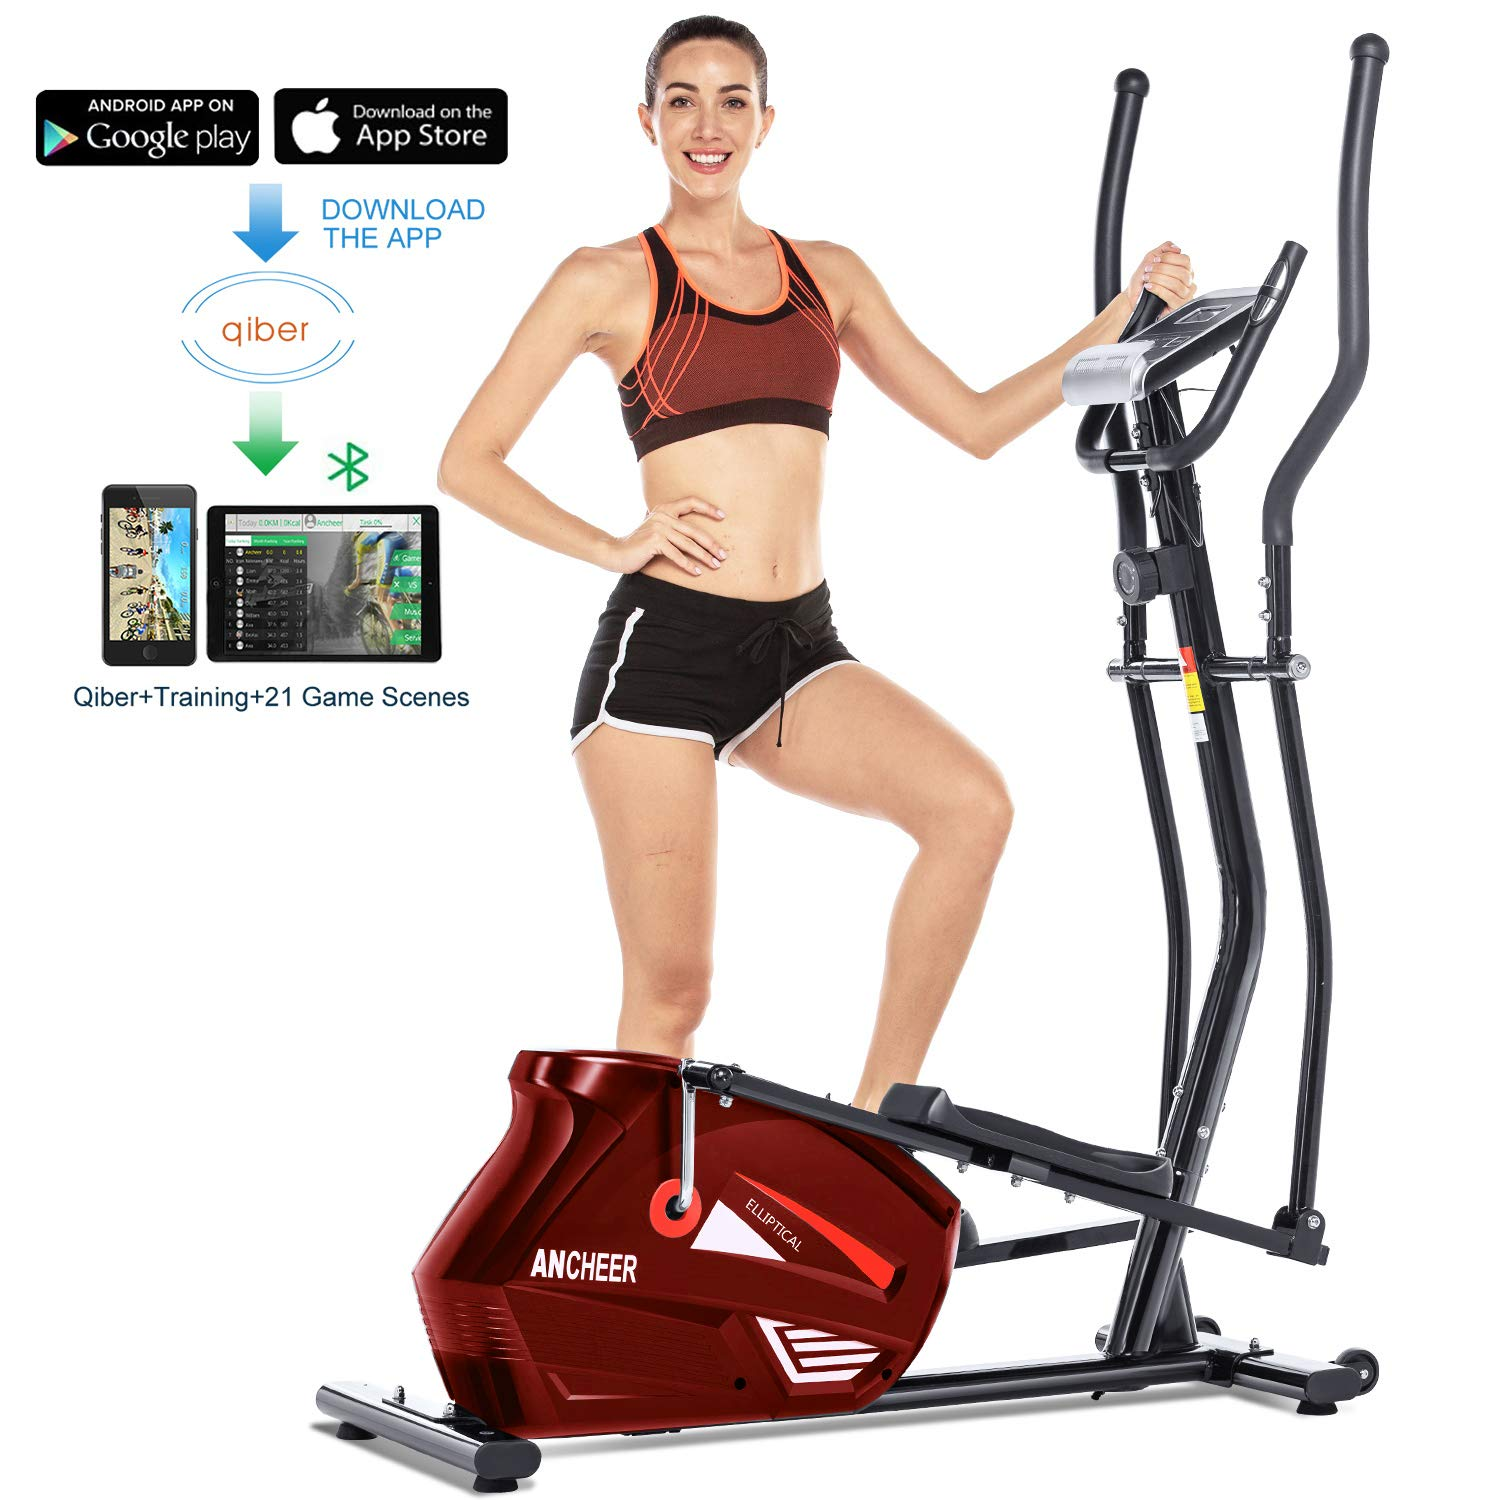 Pulse and APP Control ANCHEER Elliptical Machine Elliptical Trainer Exercise Machine Magnetic Smooth Quiet Driven with LCD Monitor